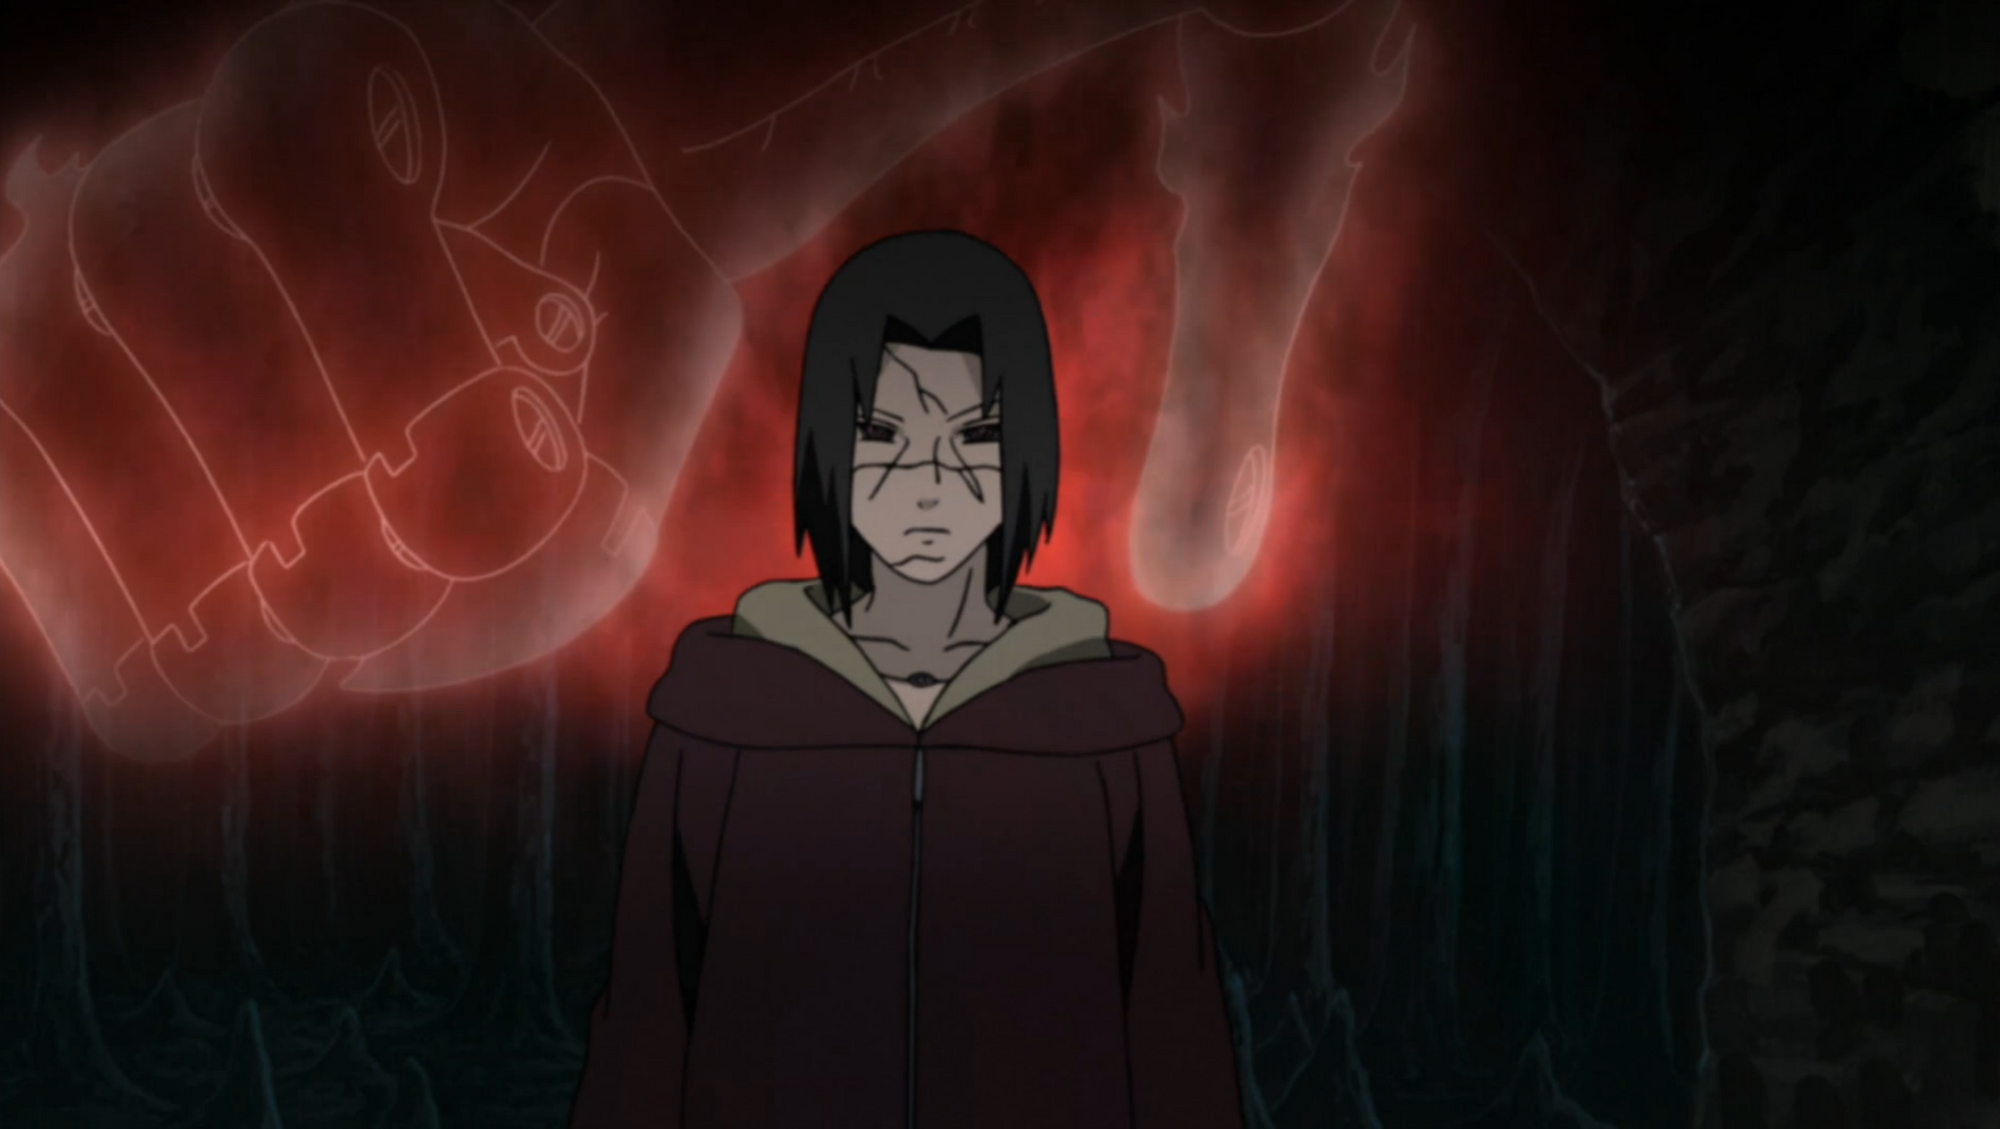 Susanoo Fist Narutopedia Fandom Powered By Wikia